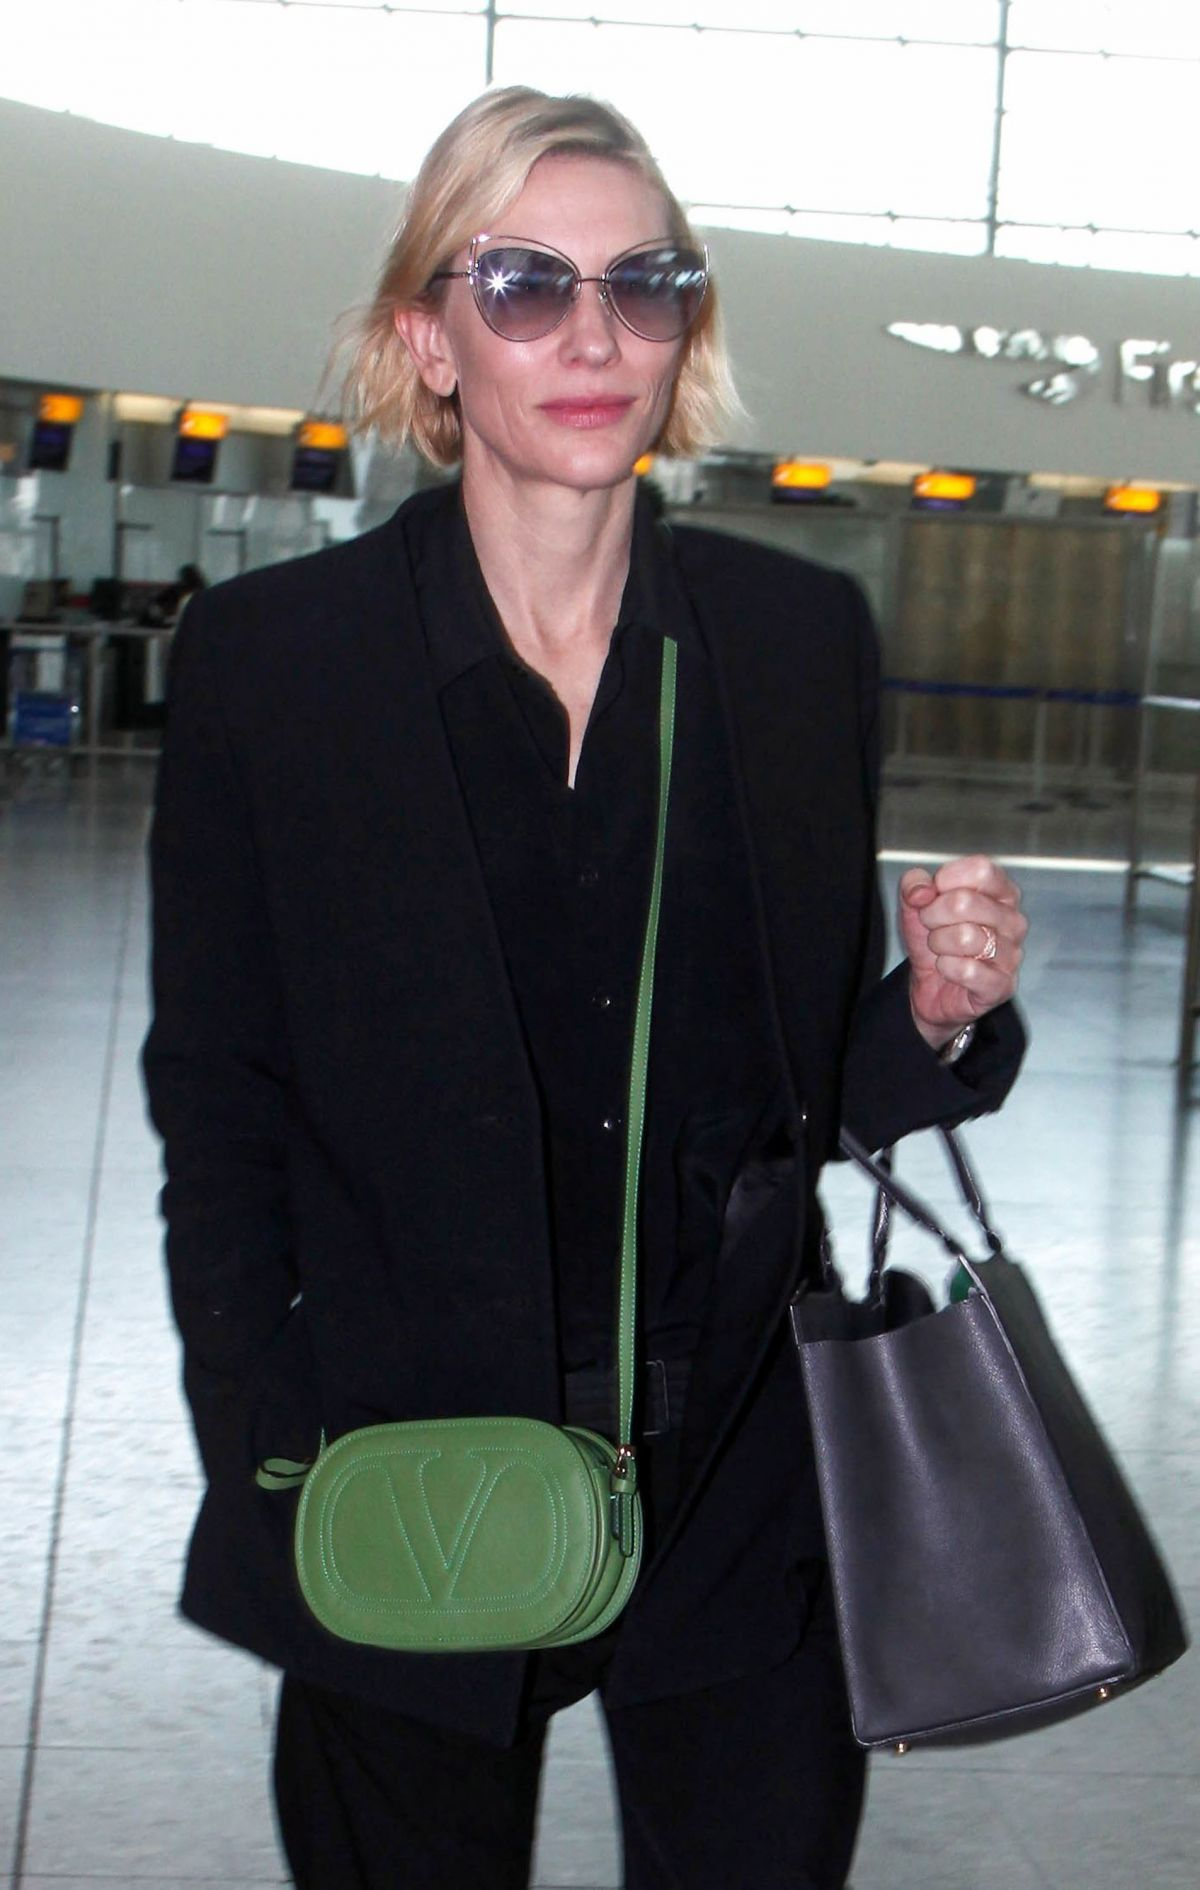 CATE BLANCHETT at Heathrow Airport in London 04/20/2016